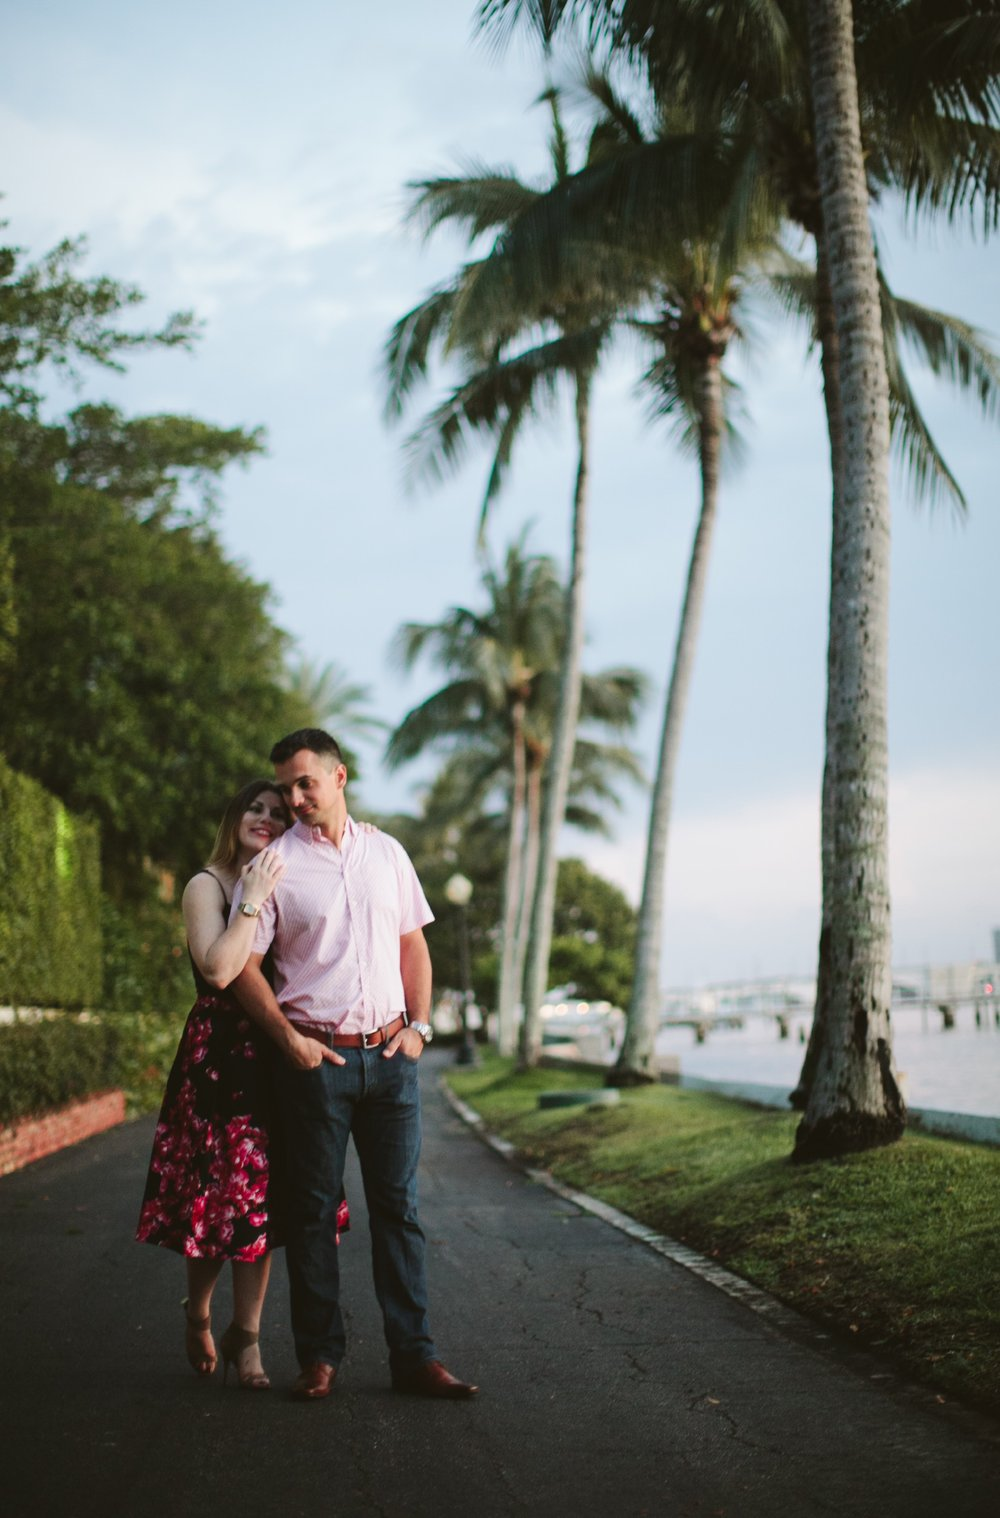 Ida + Danny Surprise Proposal Engagement Shoot at Flagler Museum Palm Beach14.jpg